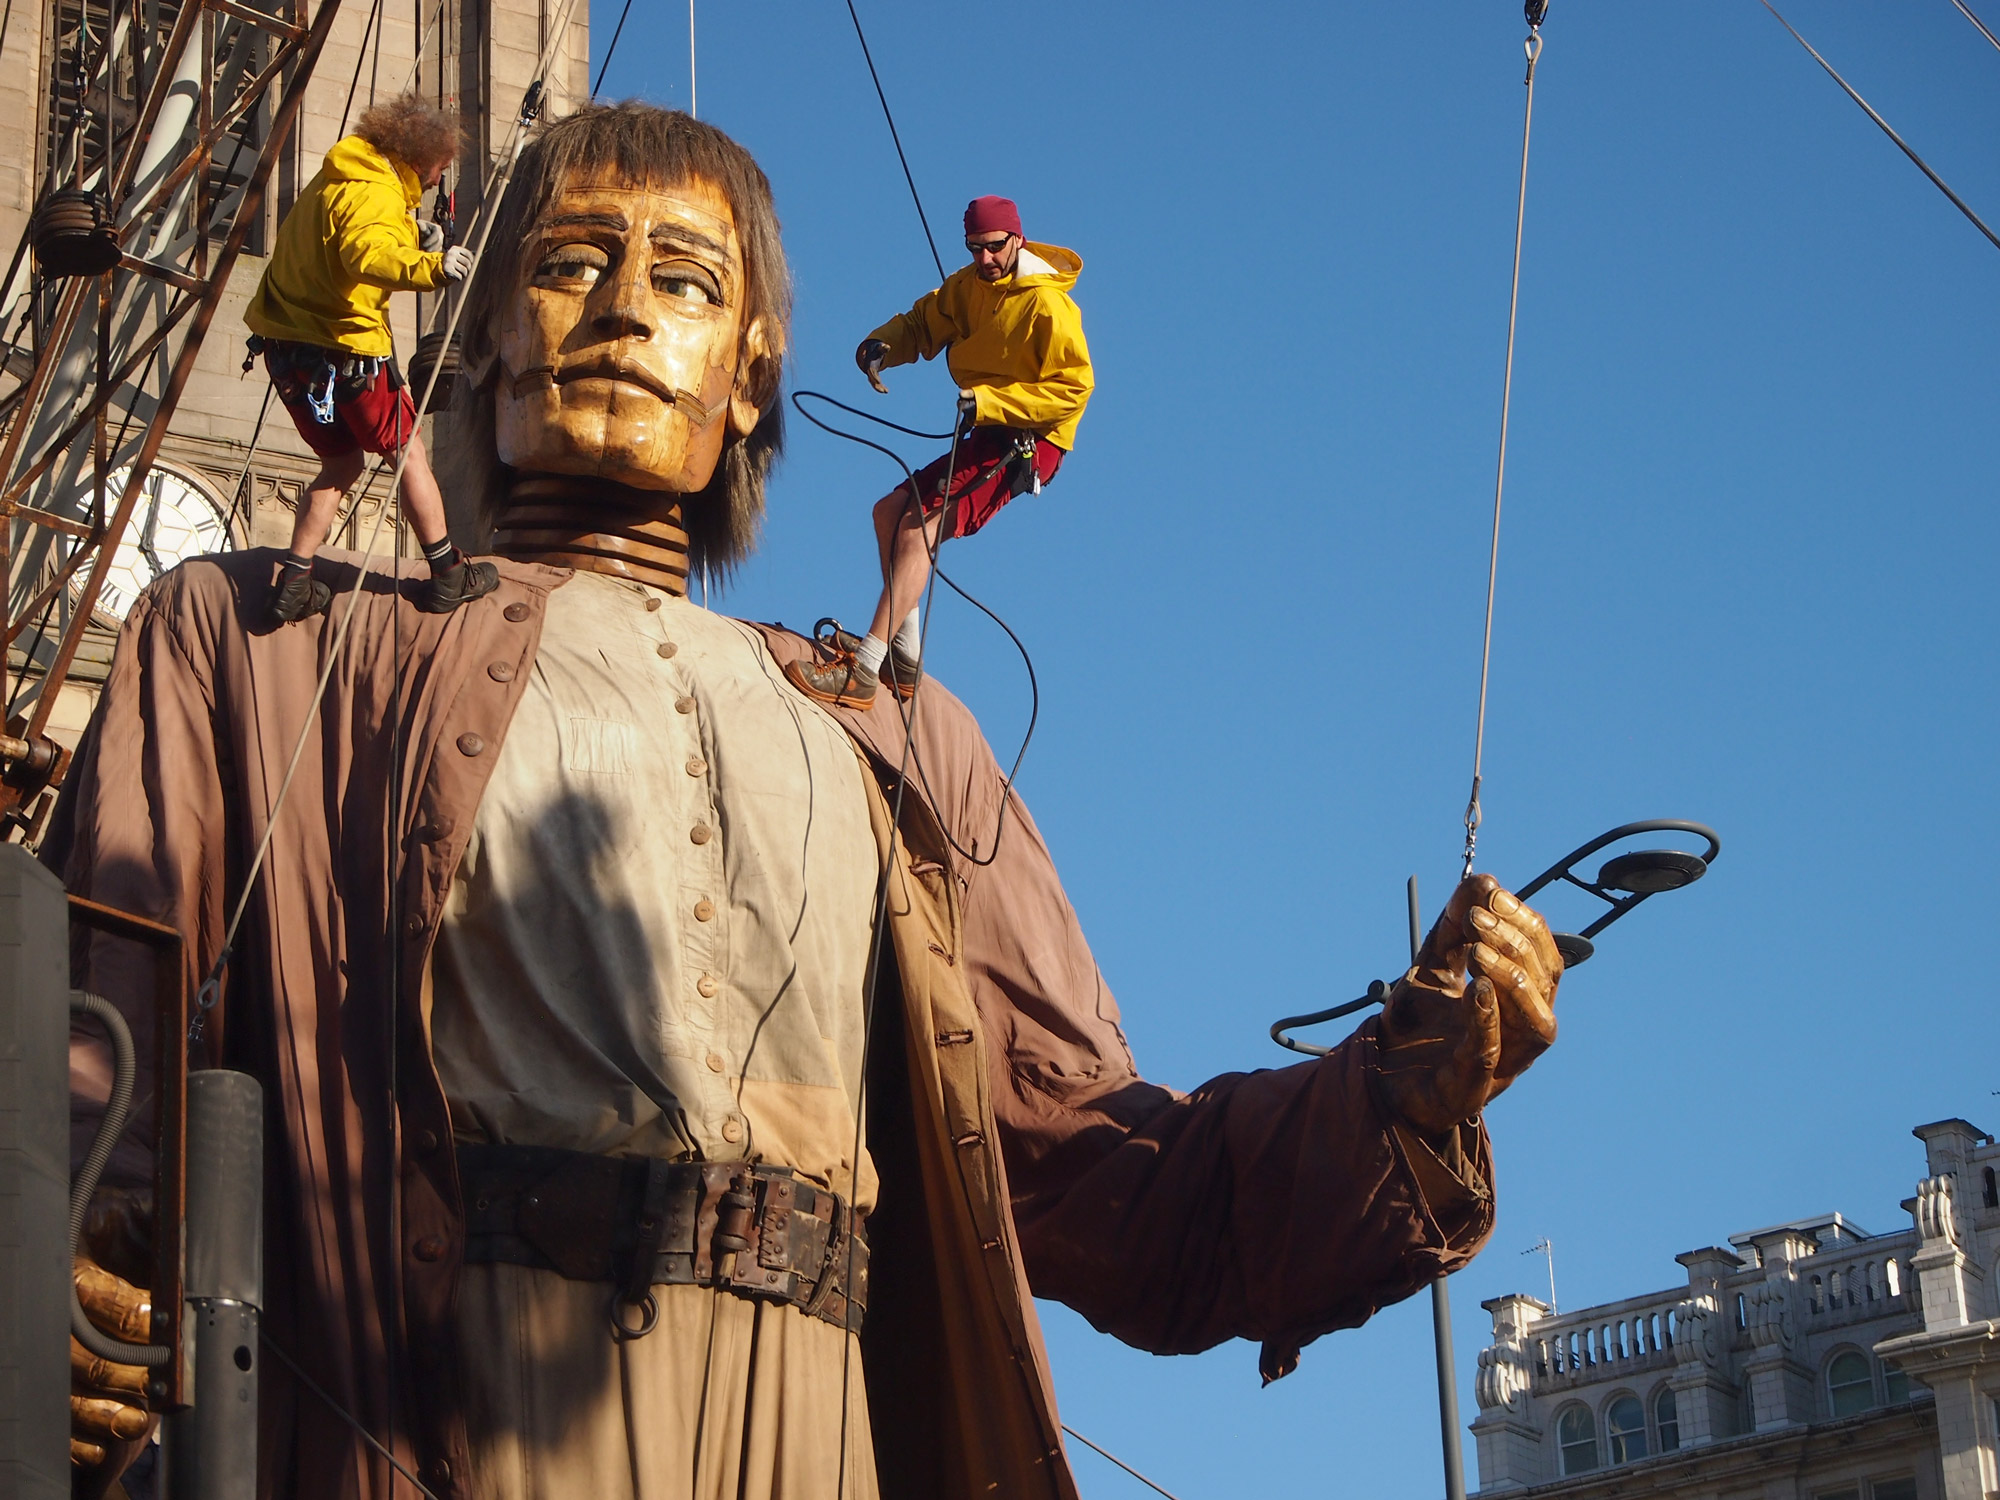 On a giant mannequin, two men hang on ropes. The giant appears to be looking at one of the men.